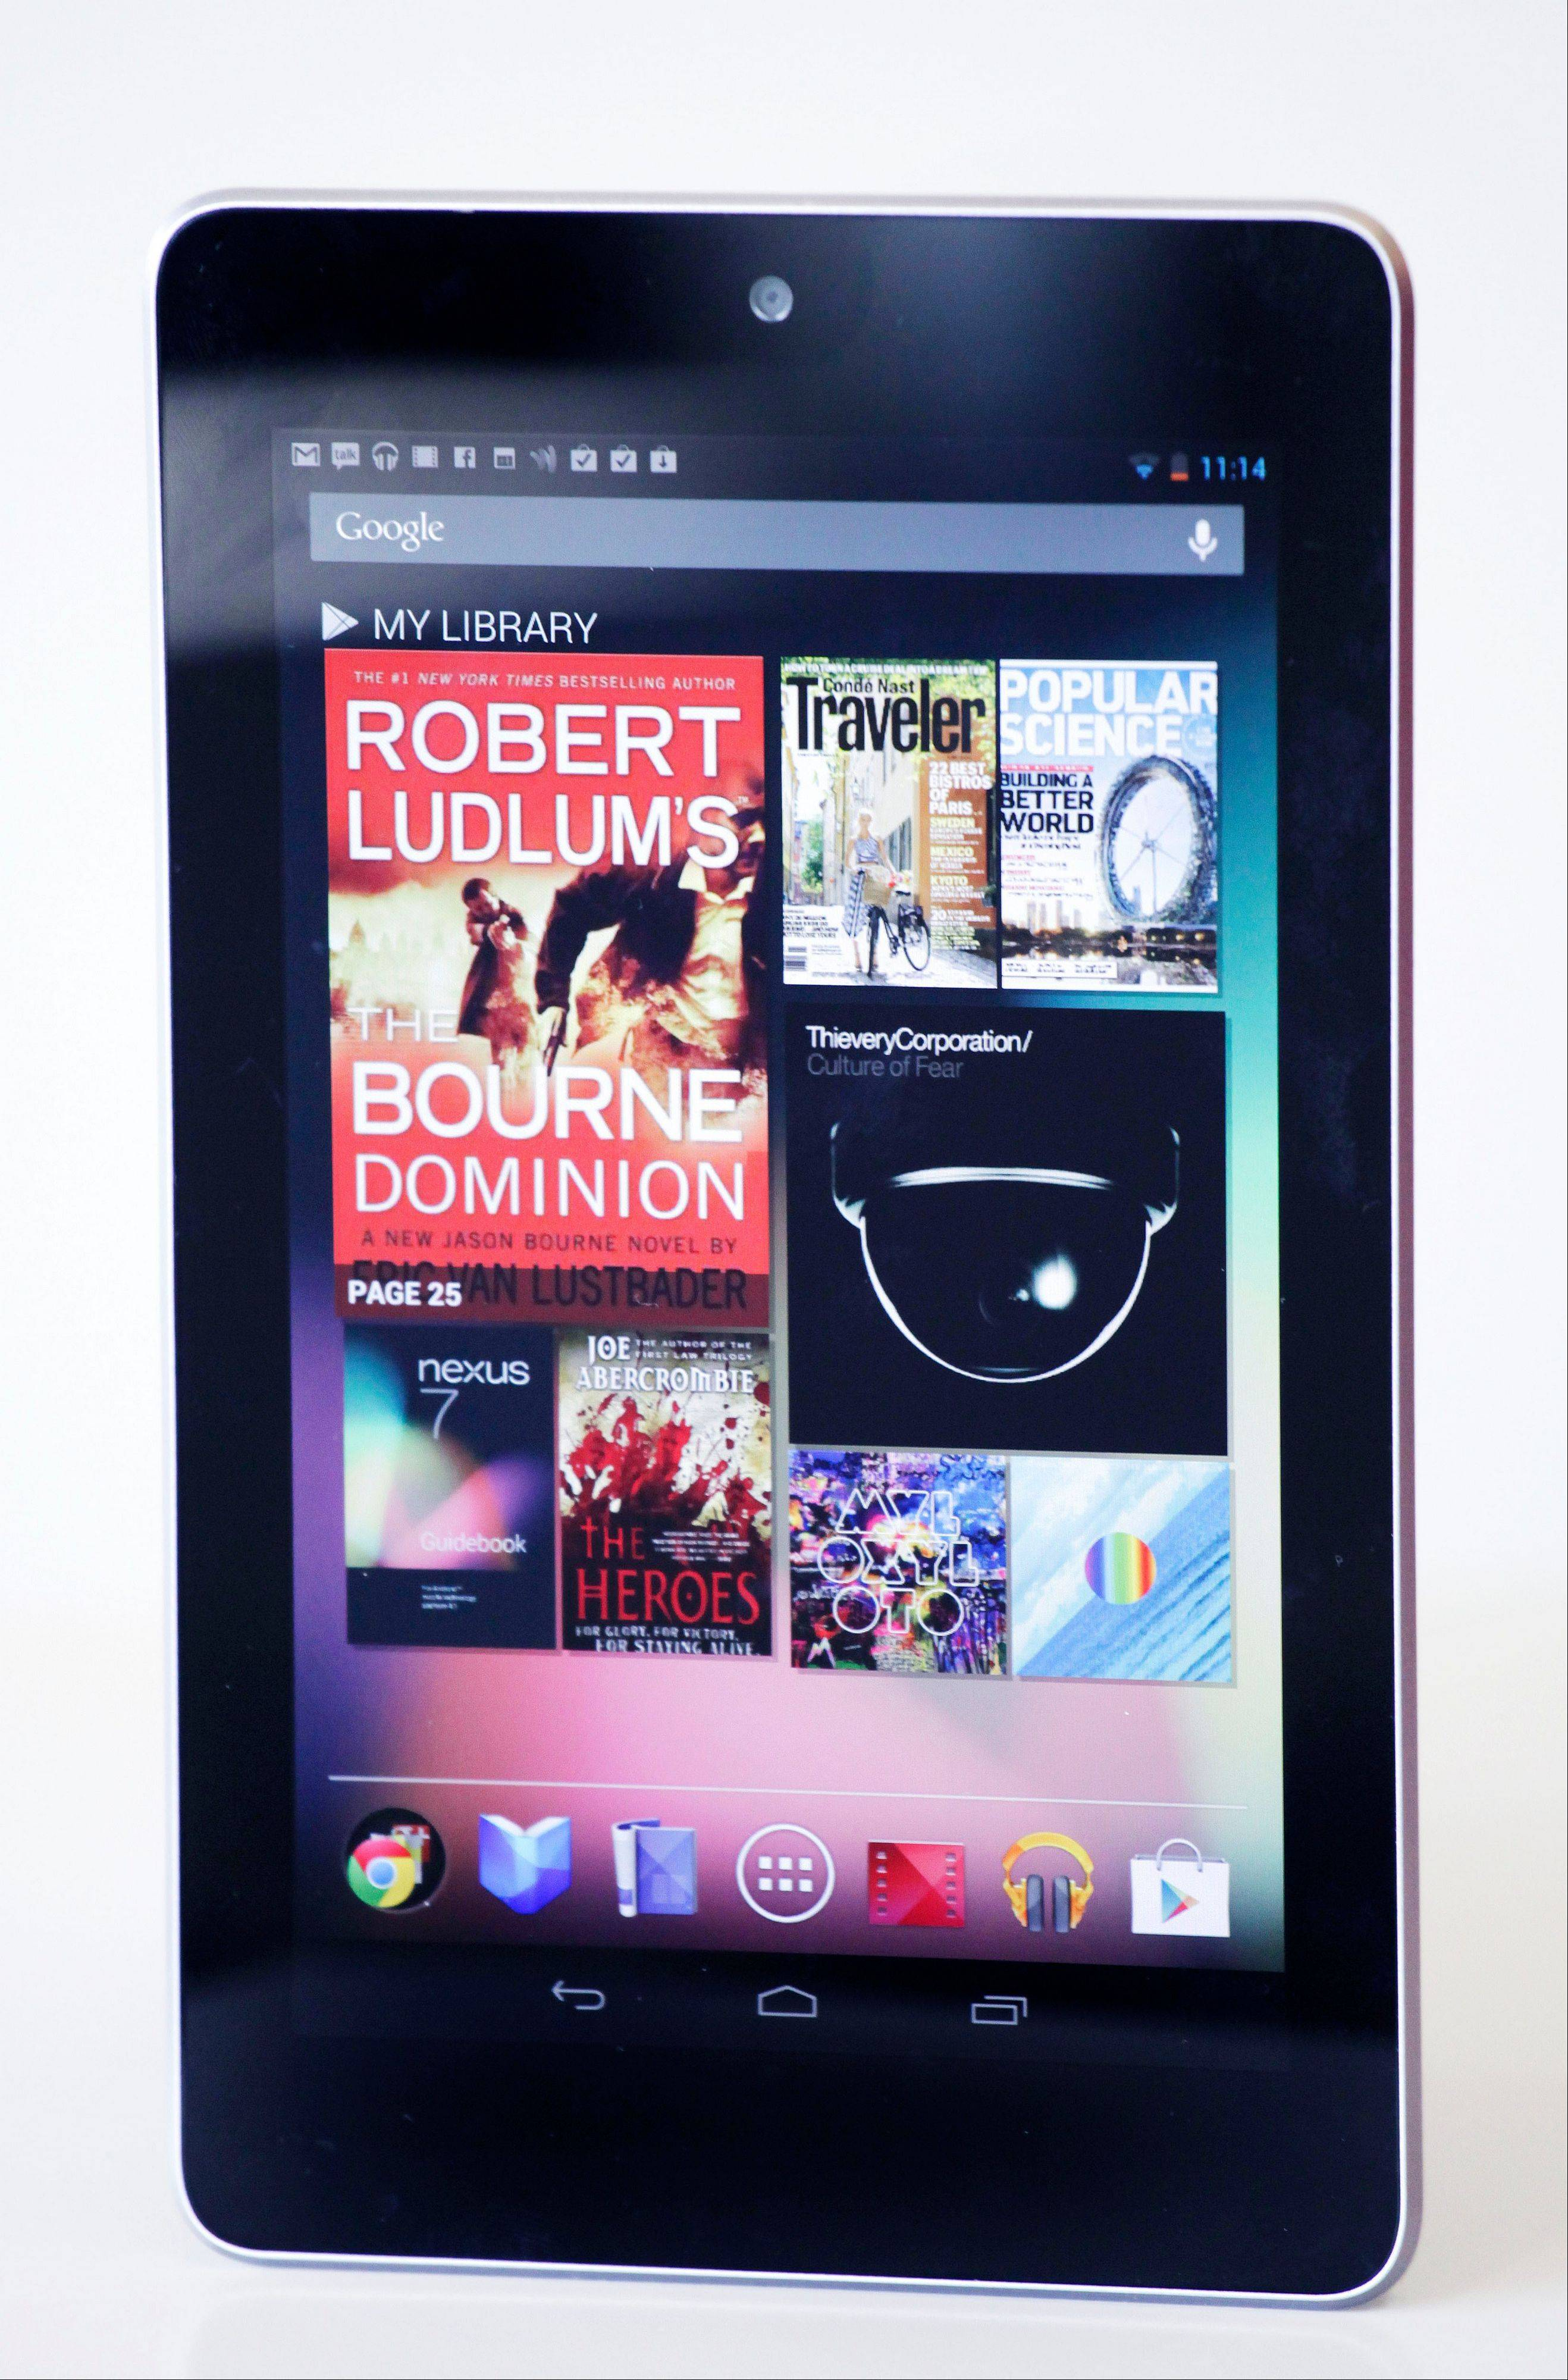 The Google Nexus 7 tablet is shown on June 29 in New York. The Nexus 7 costs $199, the same that Amazon and Barnes & Noble charge for their tablet. Google is taking preorders for delivery in mid-July.